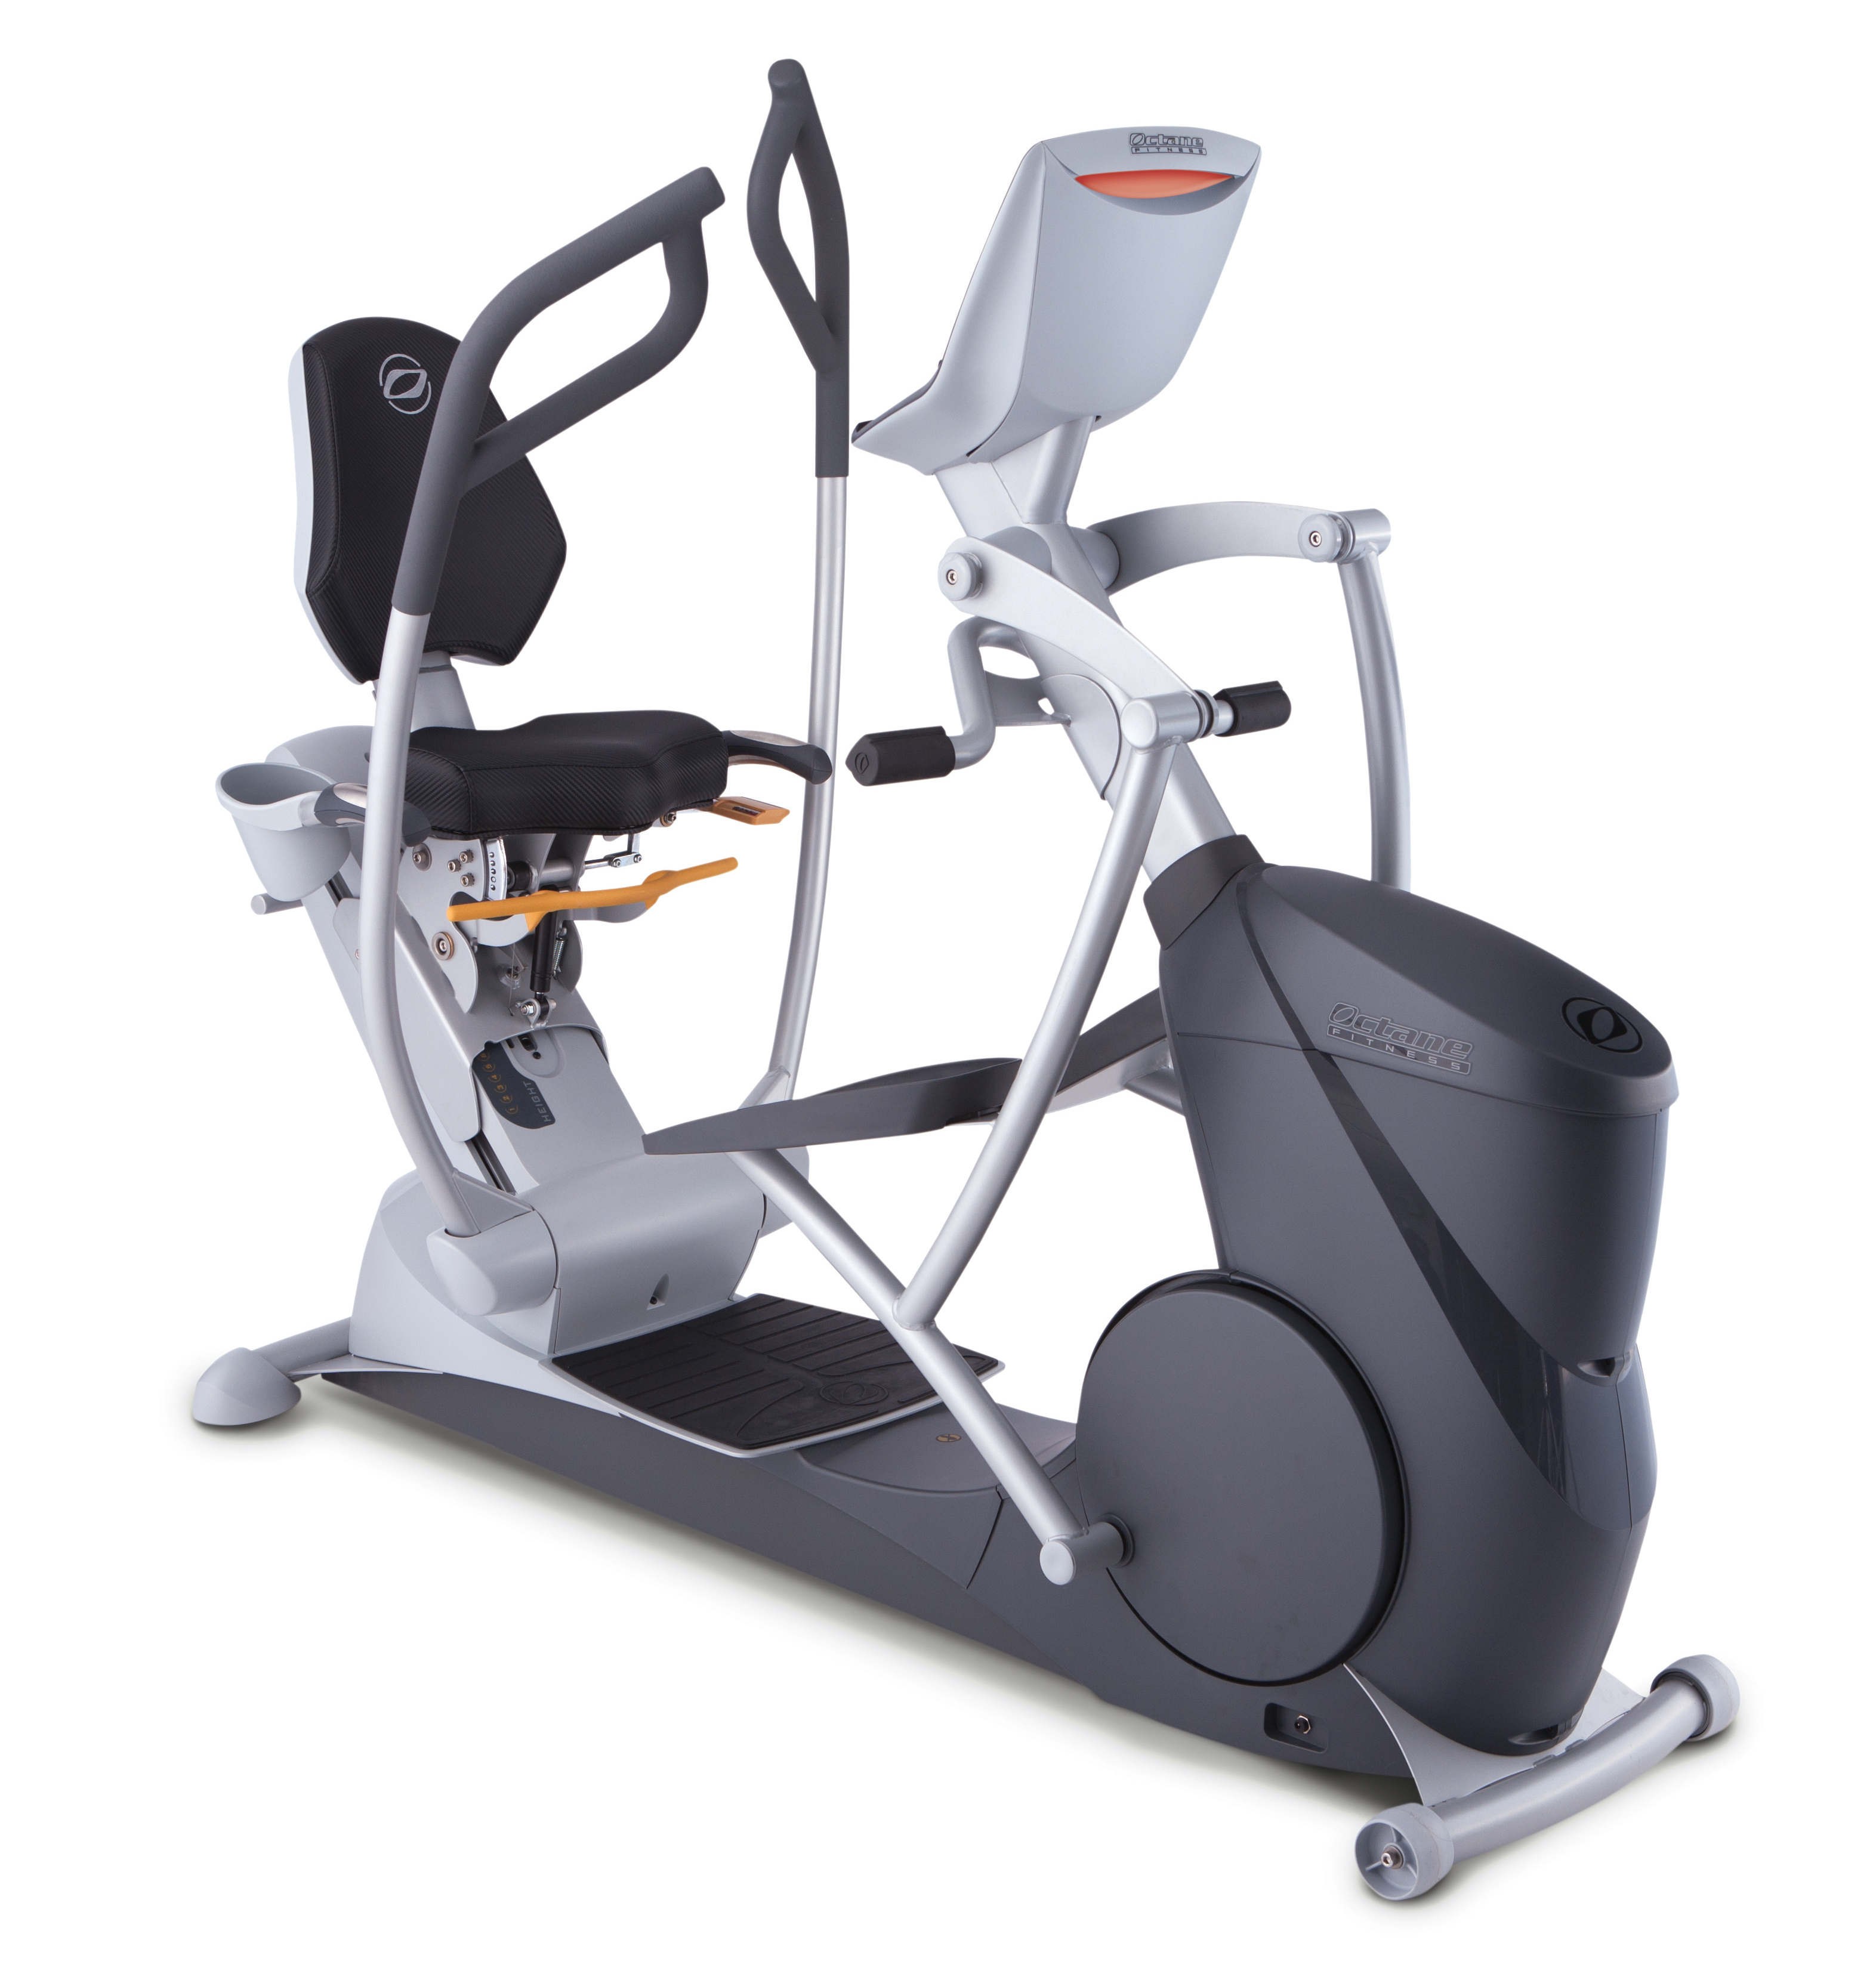 Octane Fitness XR6xi Recumbent Elliptical